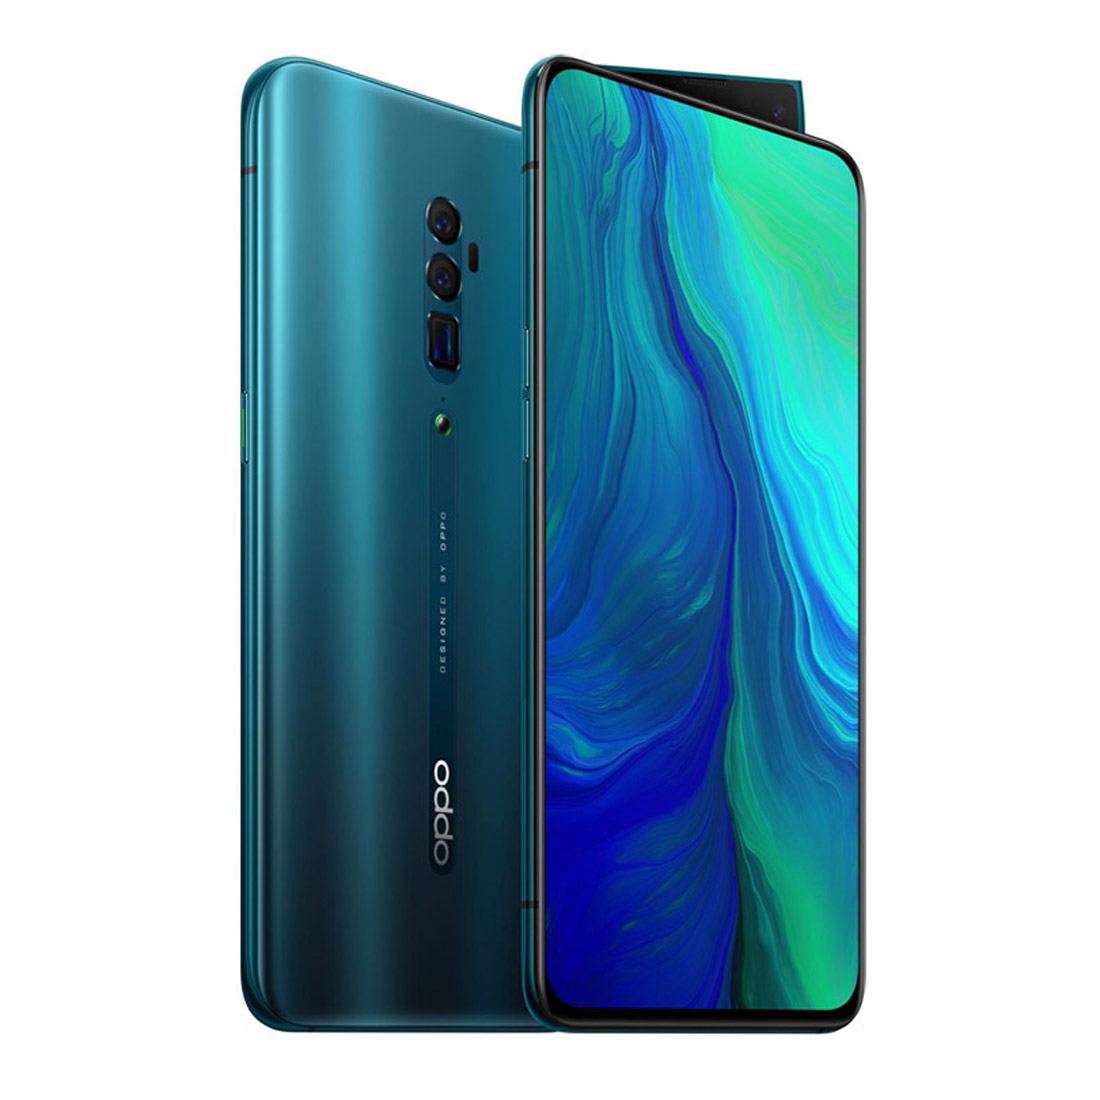 OPPO Reno 10x Zoom 5G (48MP, 256GB/8GB, Opt) - Green